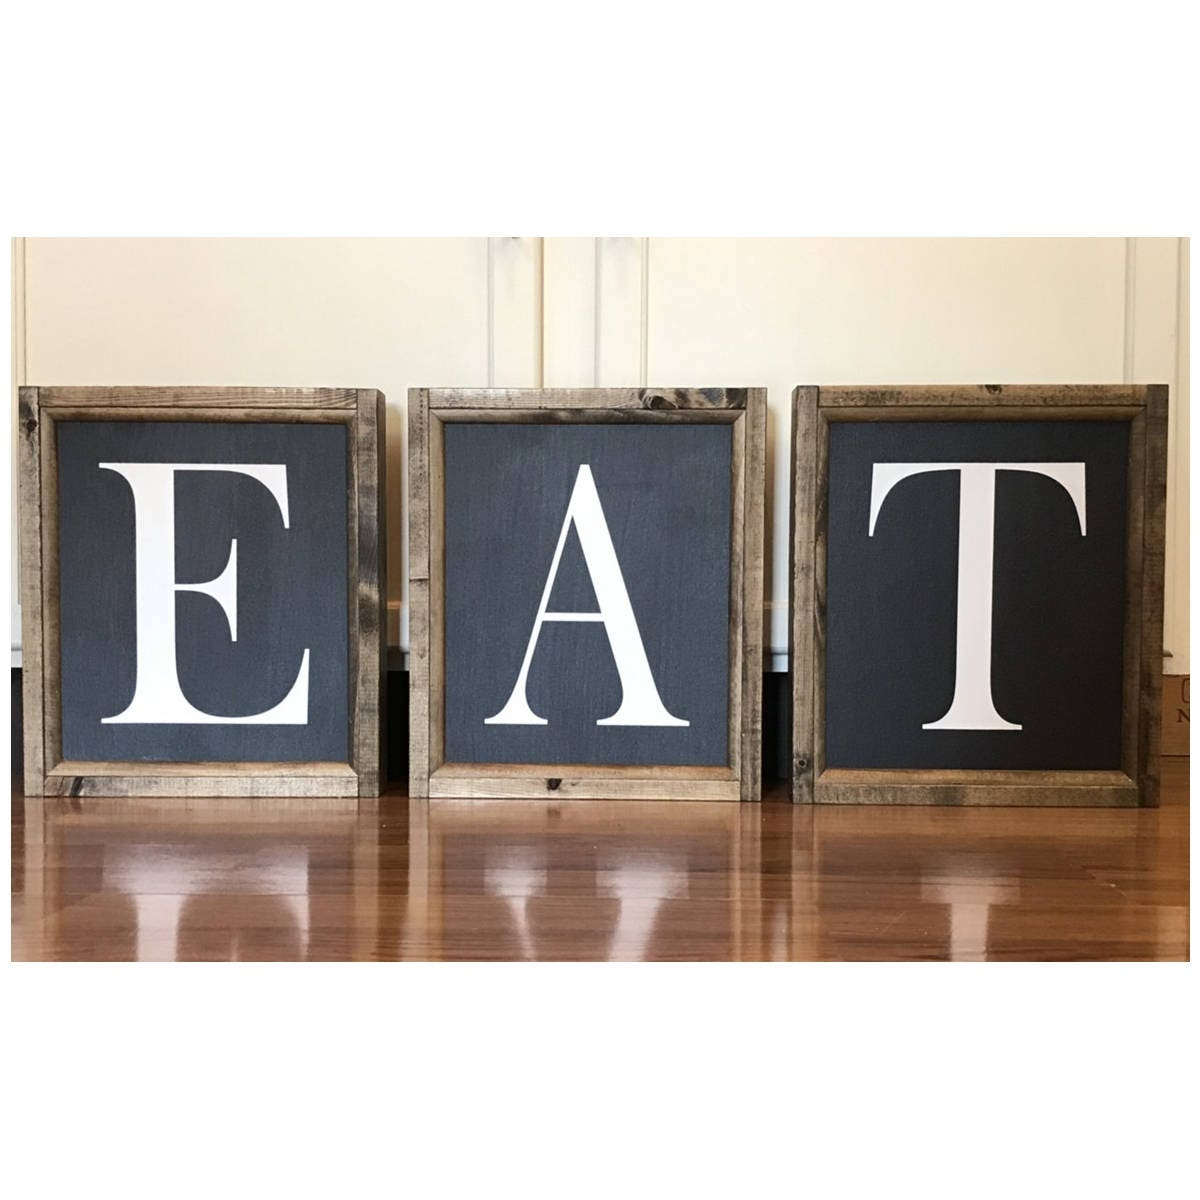 Kitchen Set Letter L: EAT Letters Wood Framed Sign Canvas Set Of 3 Kitchen Signs